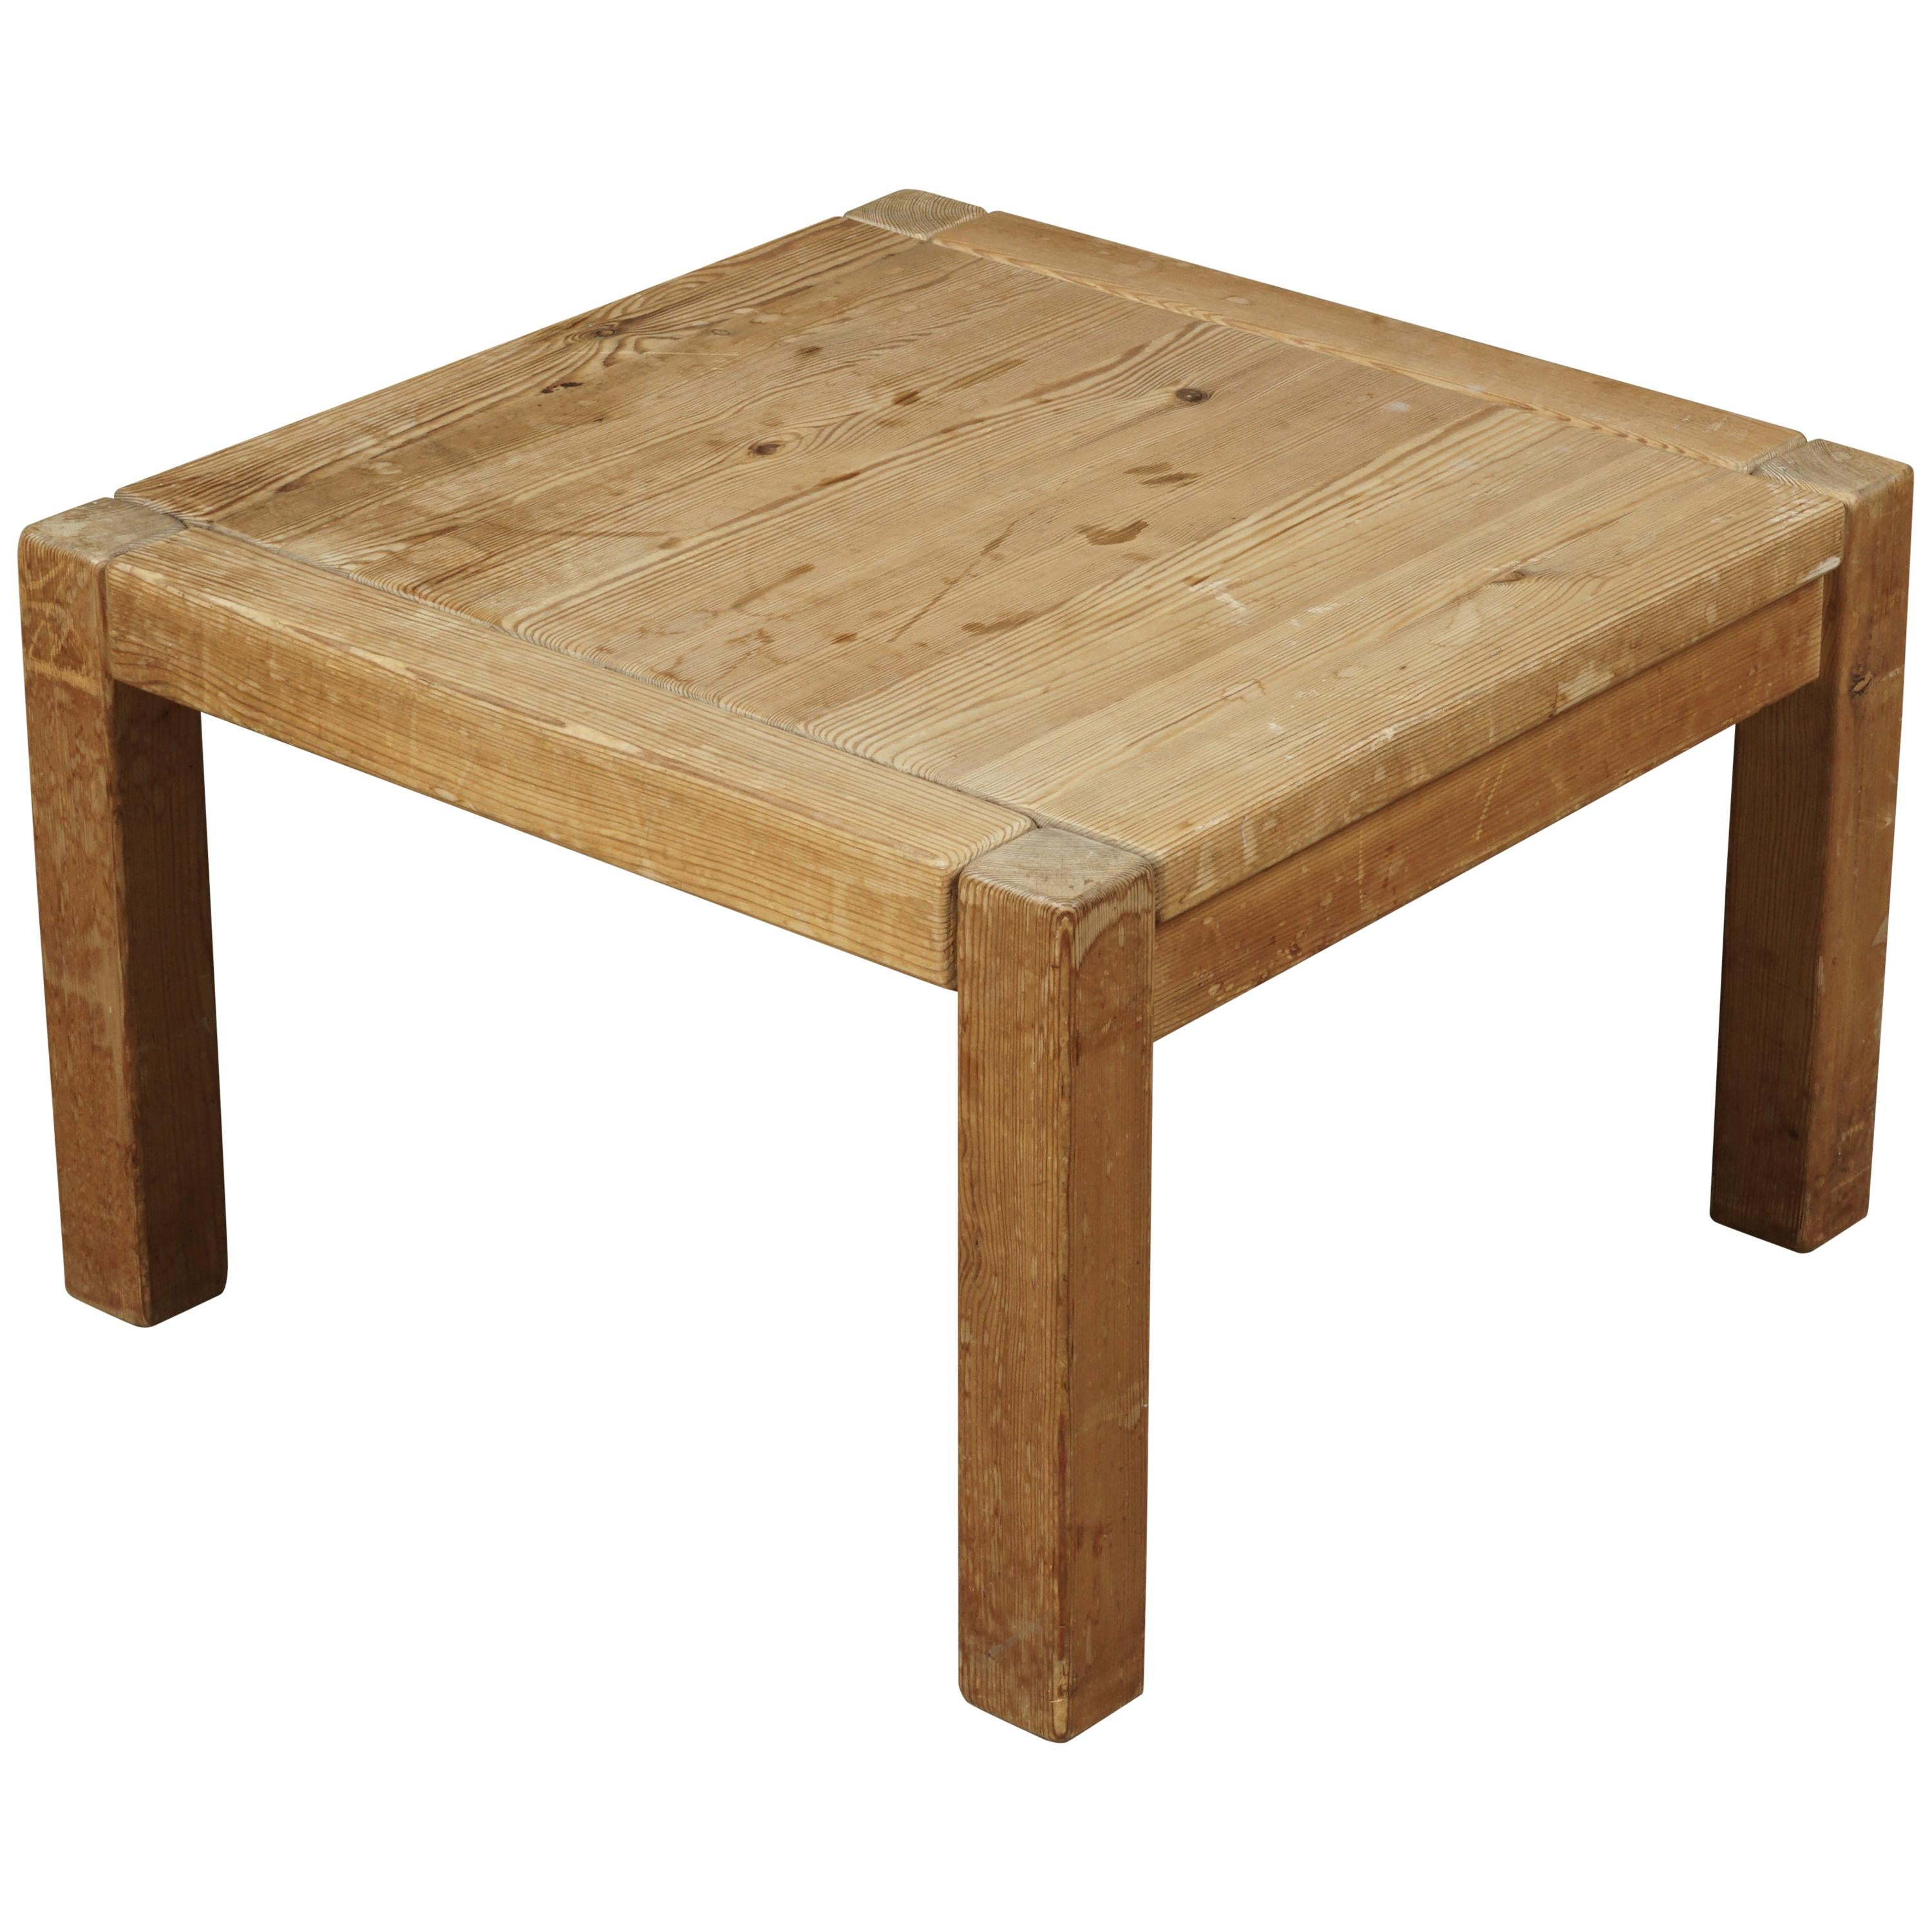 Solid Pine Coffee Table.Small Pine Coffee Table From Netherlands Circa 1960